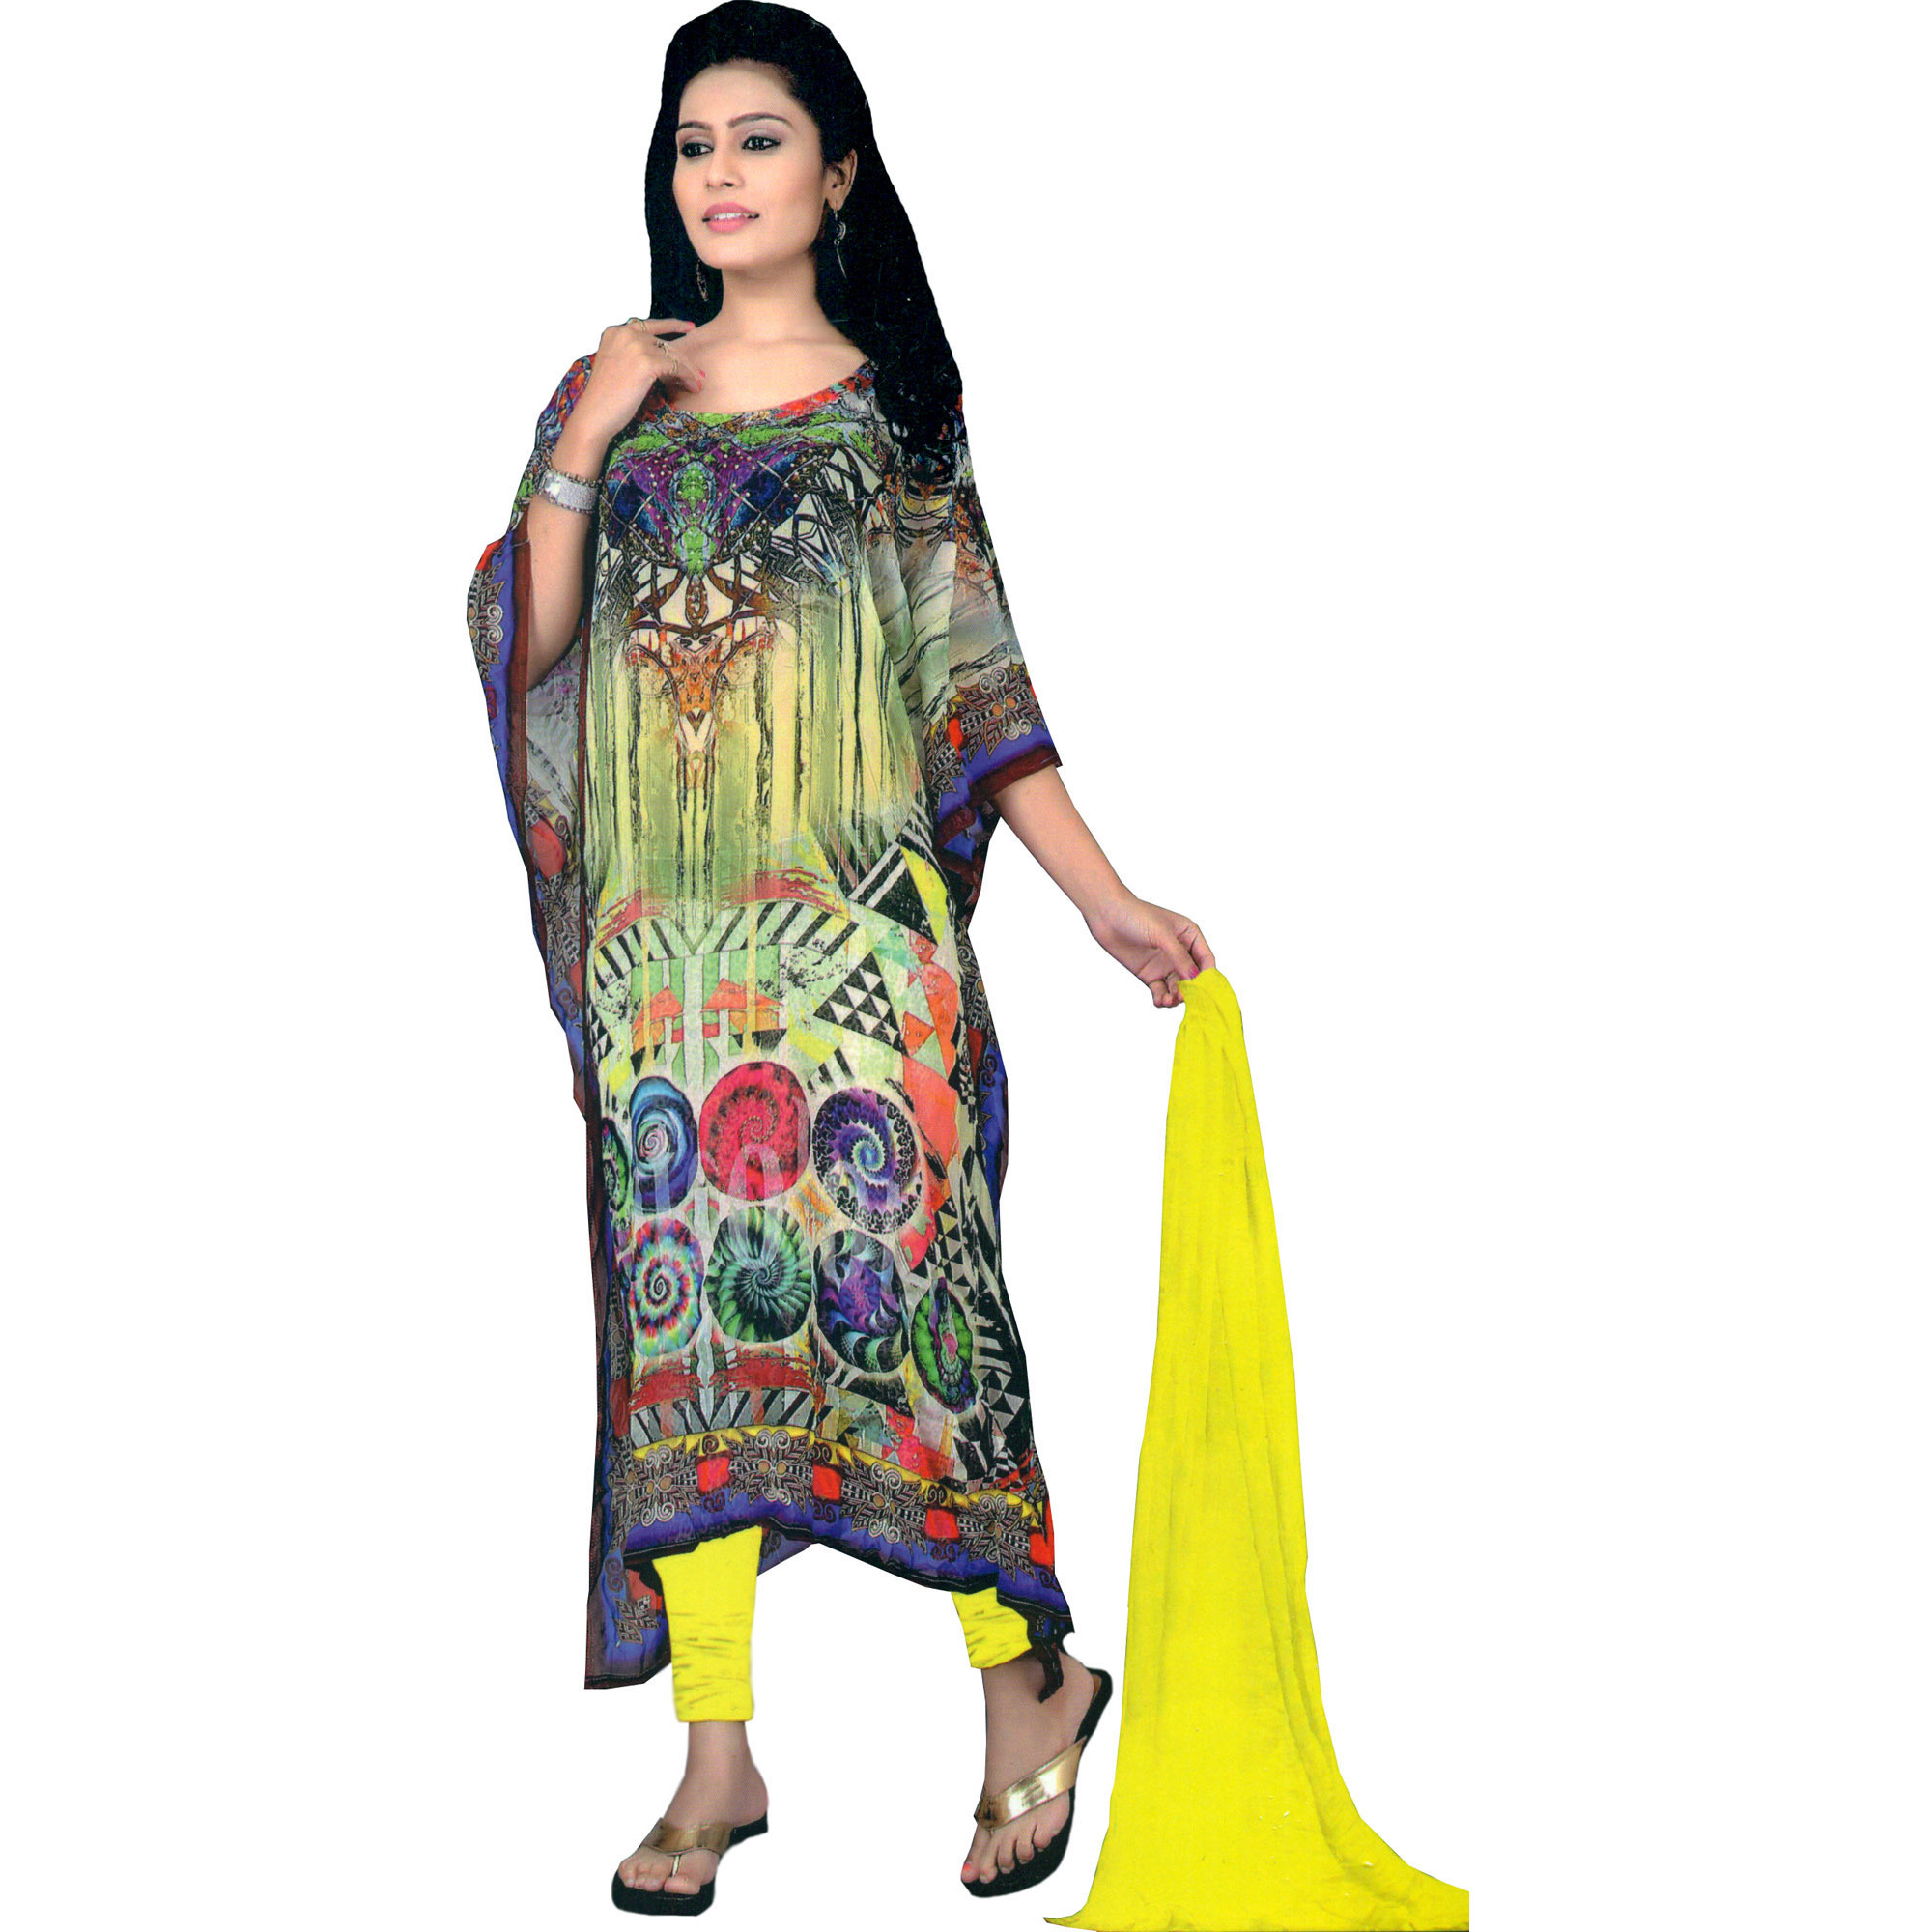 Multicolor Digital-Printed Choodidaar Kaftan Suit with Stone-work on Neck